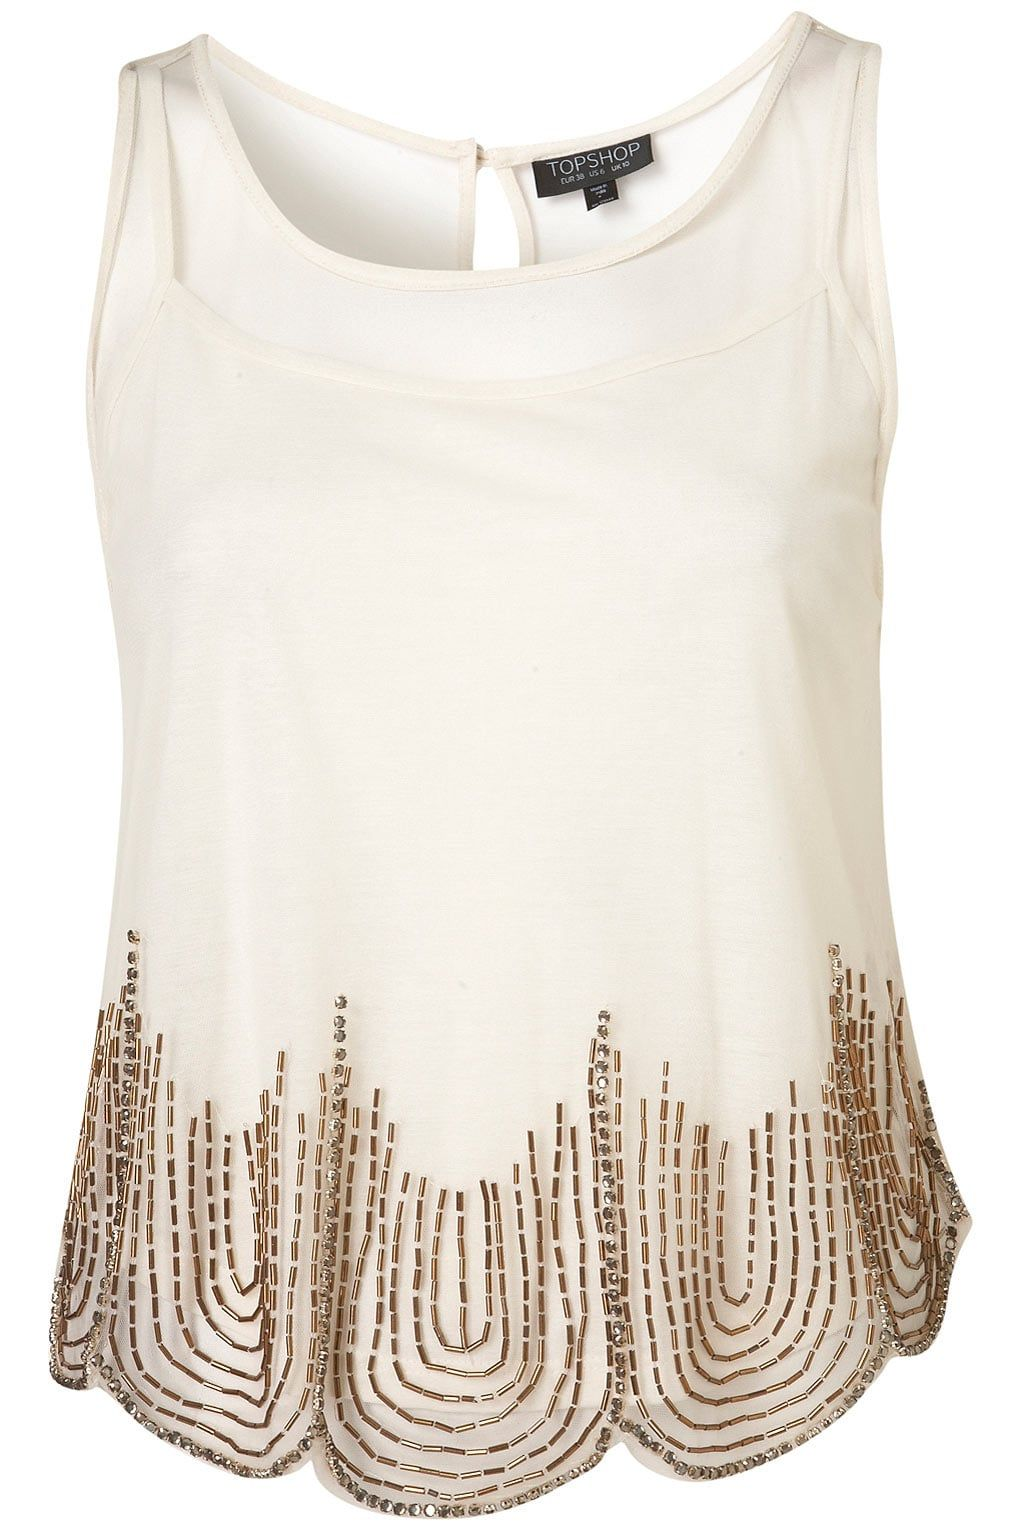 Shop Beaded Tops For Party Season Embellished Top Casual Dresses Beaded Top